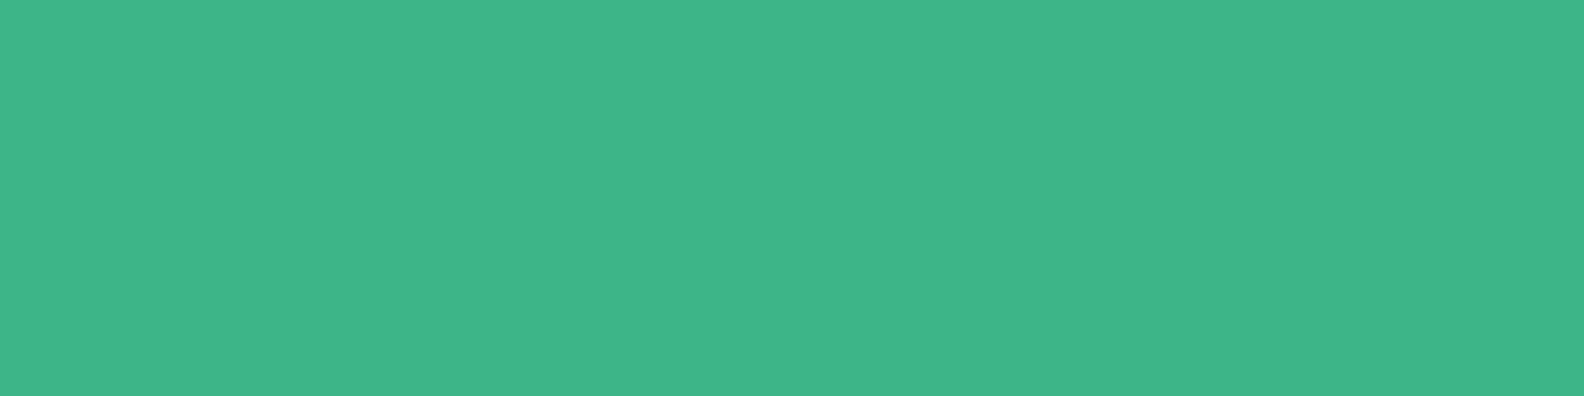 1584x396 Mint Solid Color Background